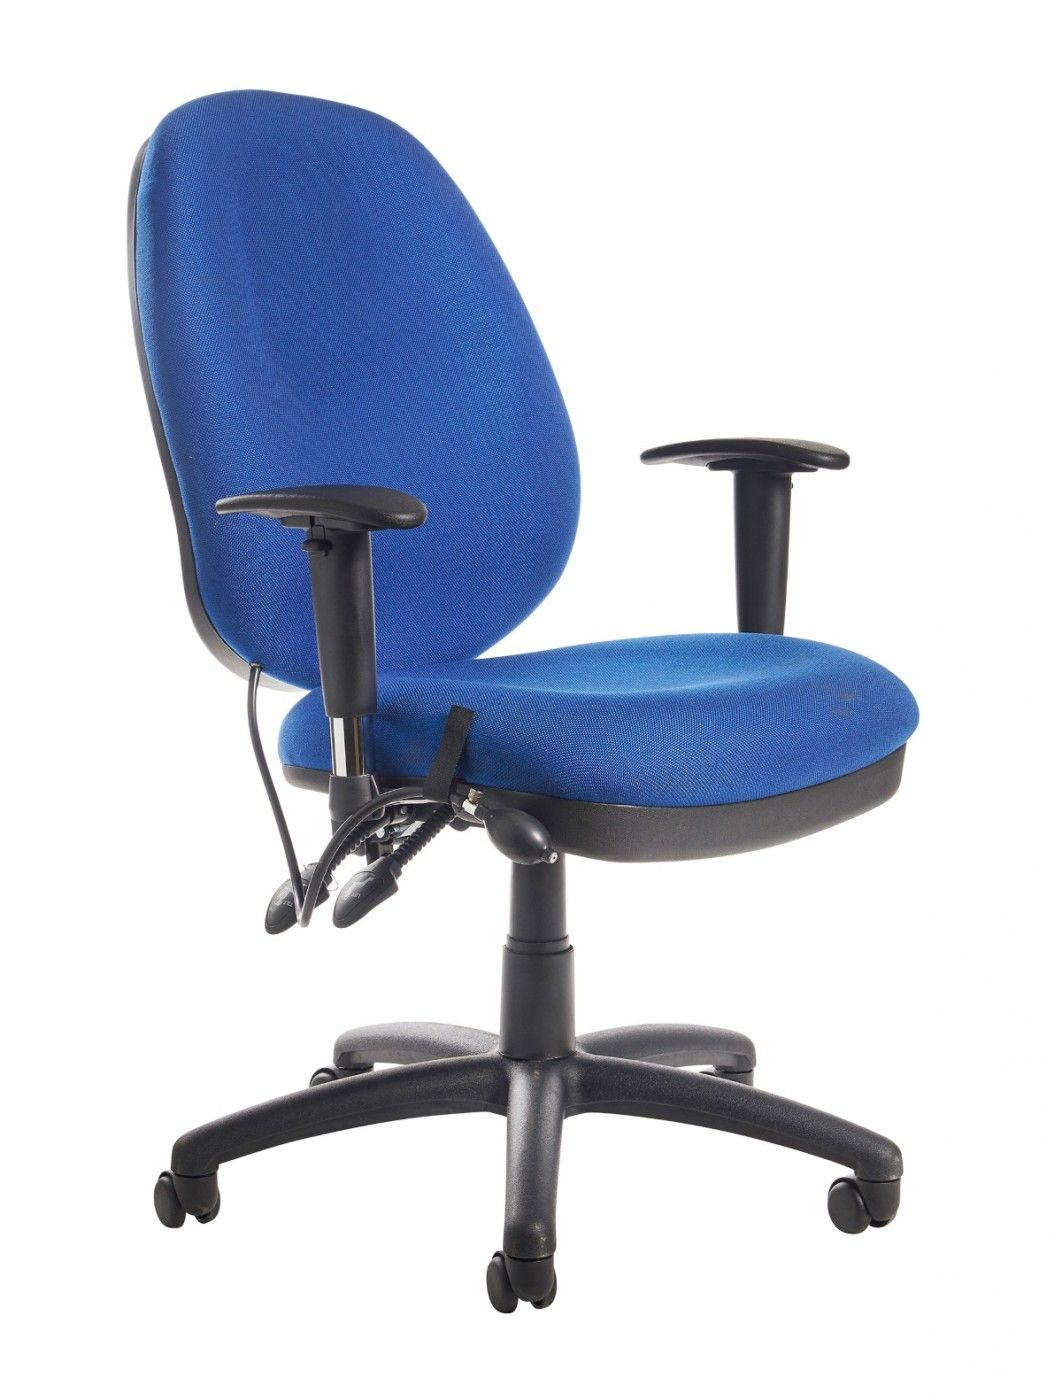 Office chairs for rent in Bangalore for the best price